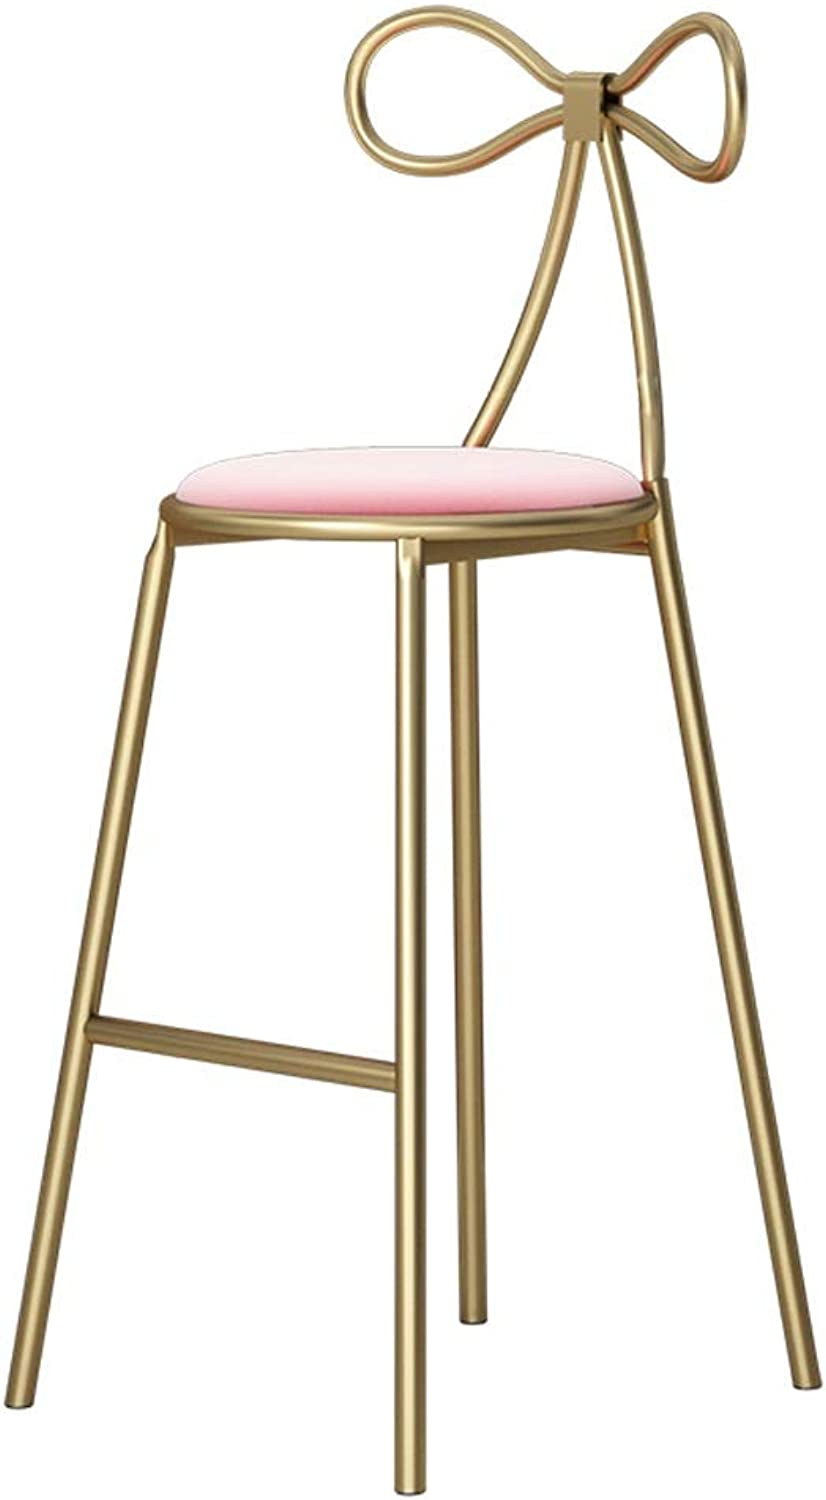 Manicure Shop High Foot Iron Art Bar Chairs Modern Simple Designer Soft Seat Creative Casual Dining Chair 0522A (color   Pink, Size   65cm Seat Height)